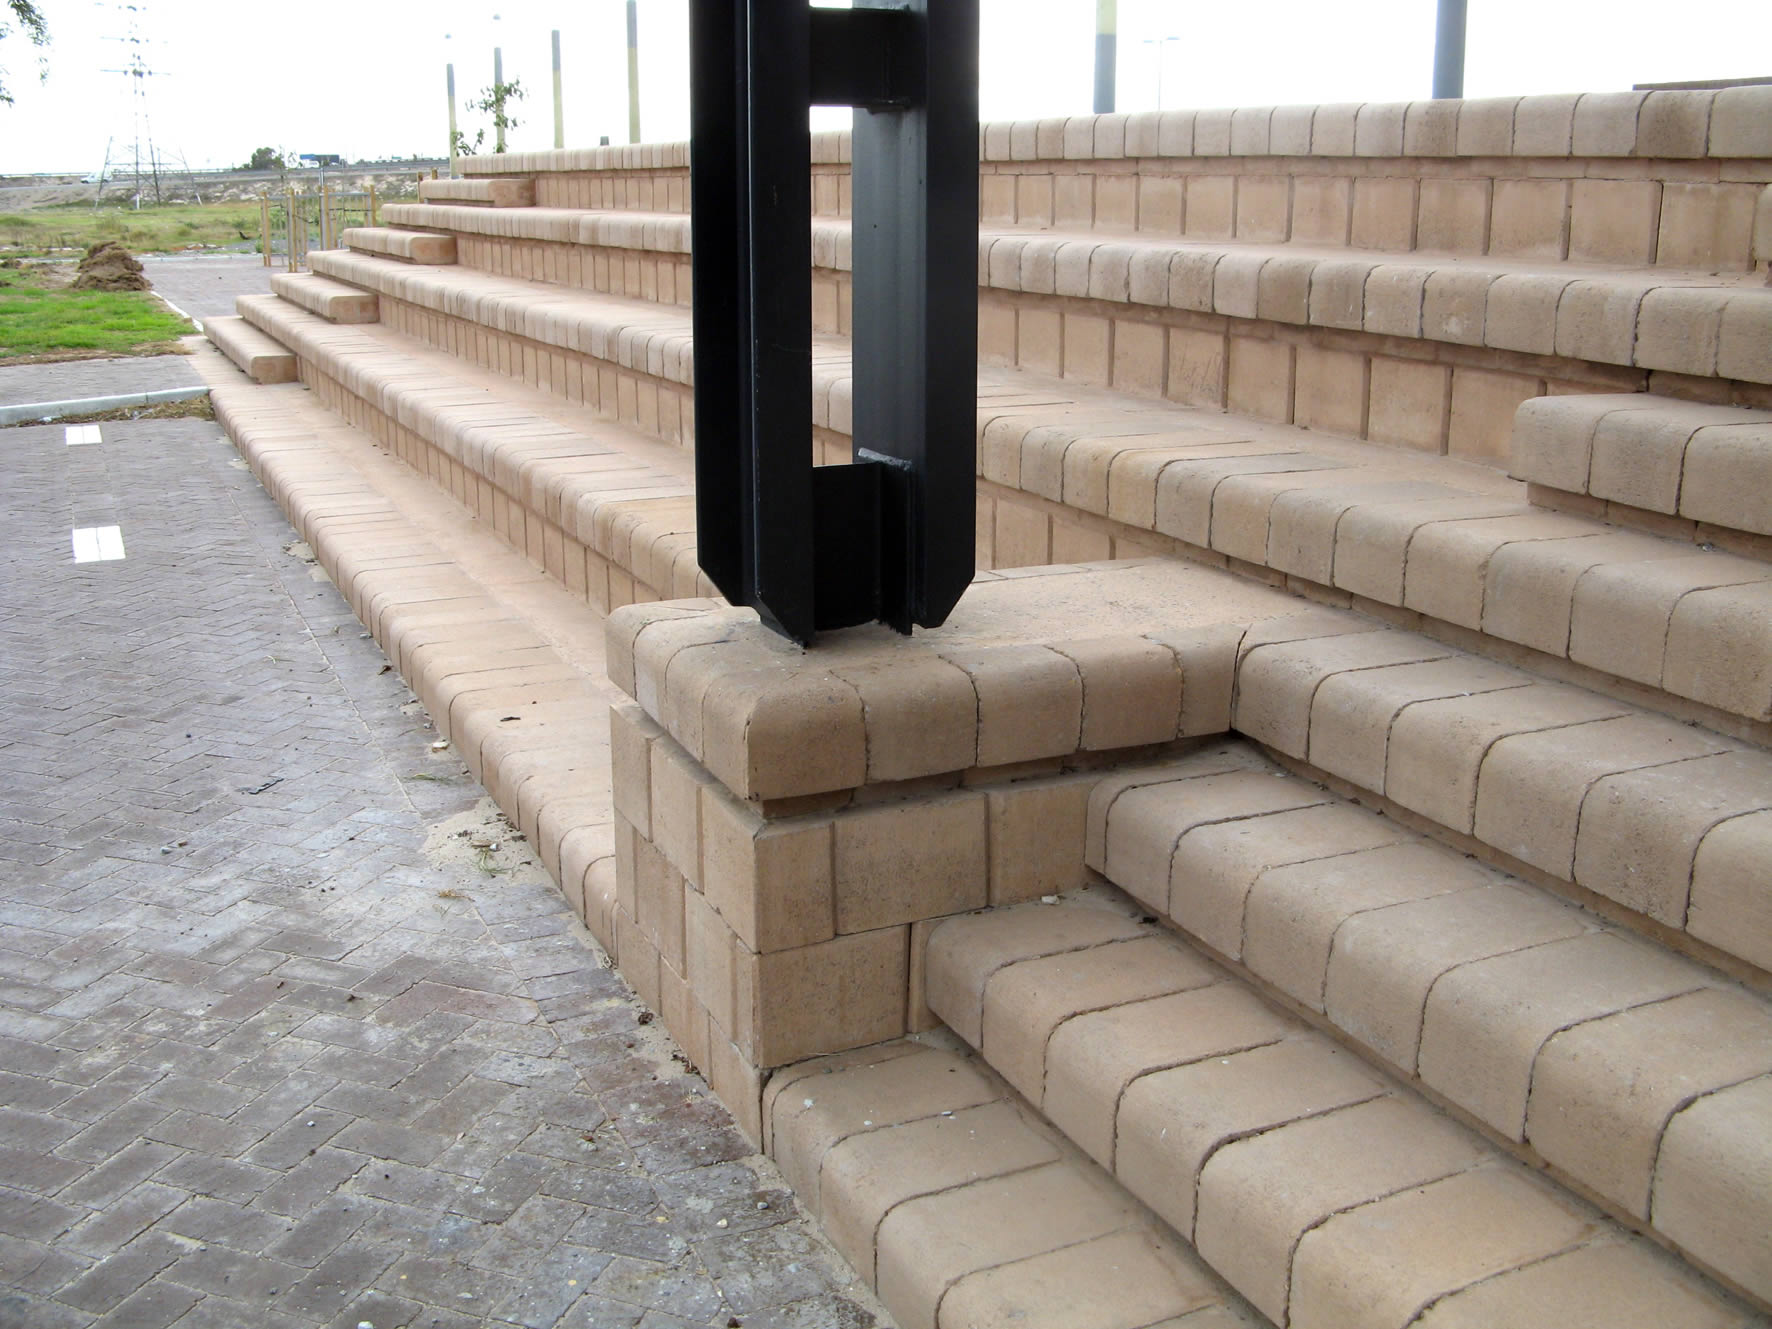 Stair and ramp combination with the 4x4 Block